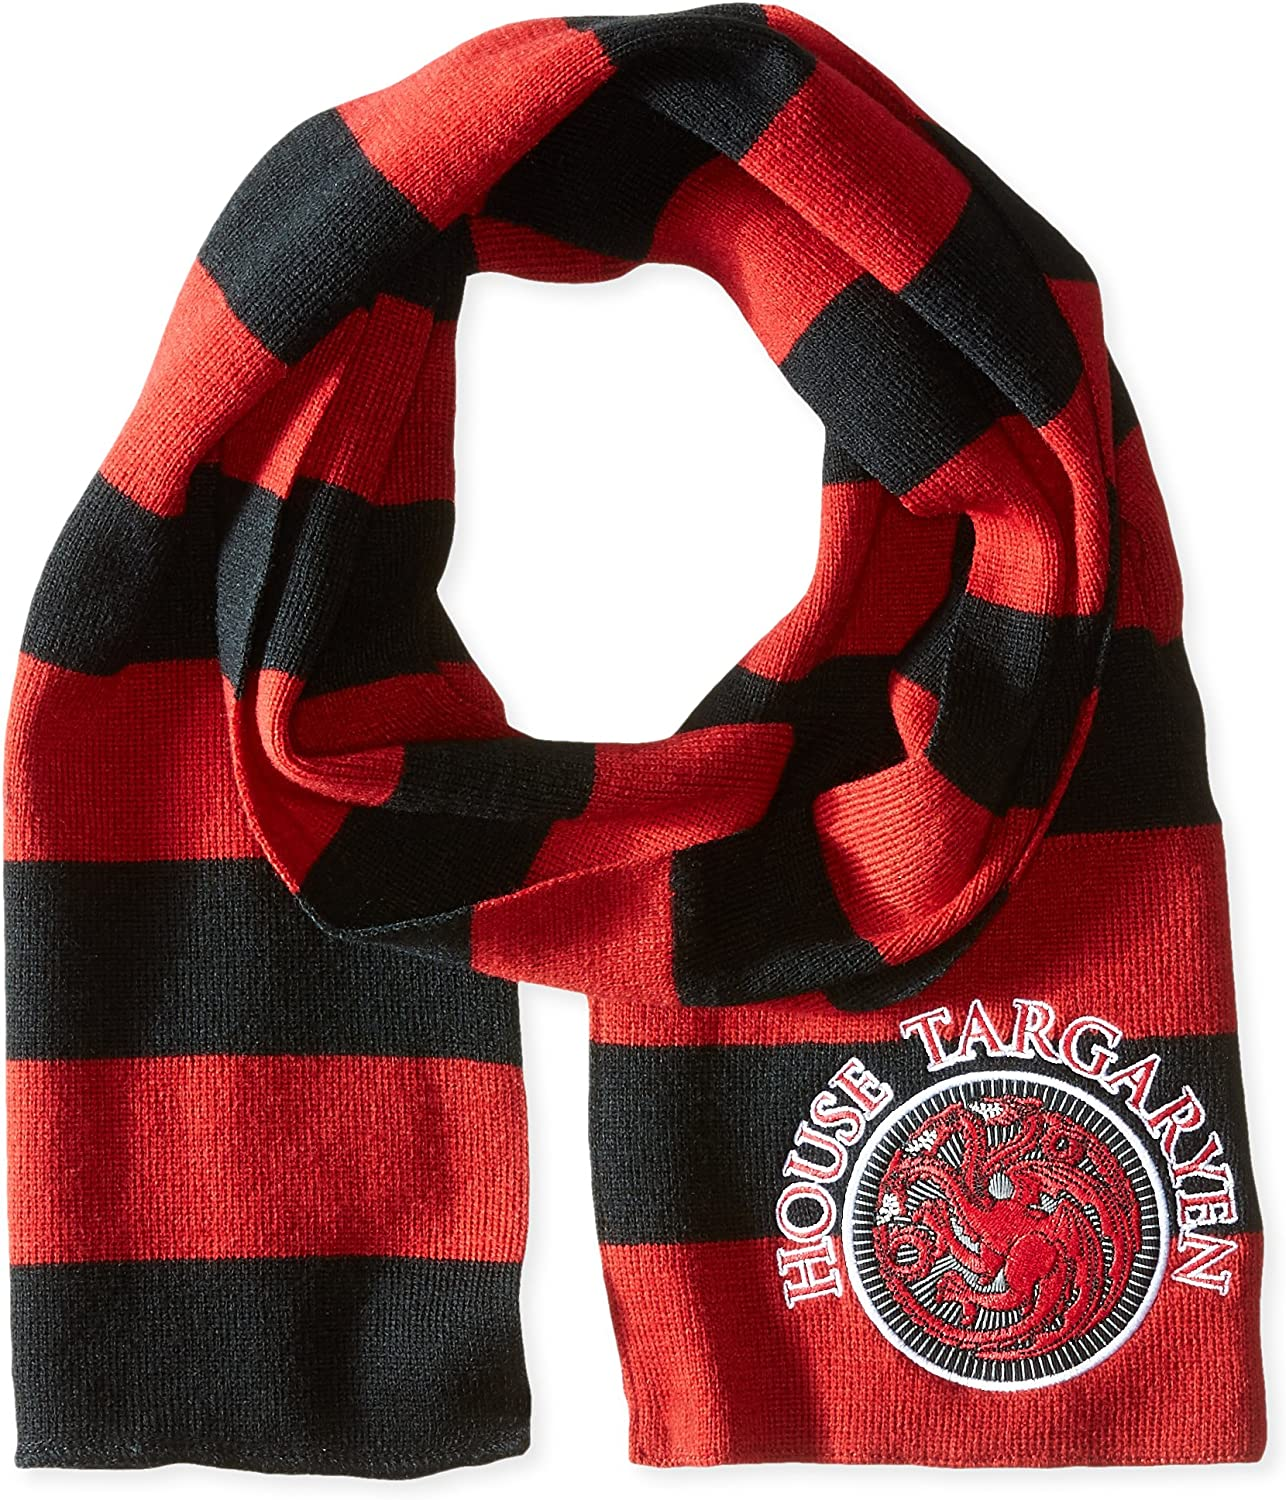 Concept One Men's Game of Thrones Striped Scarf with Targaryen Patch